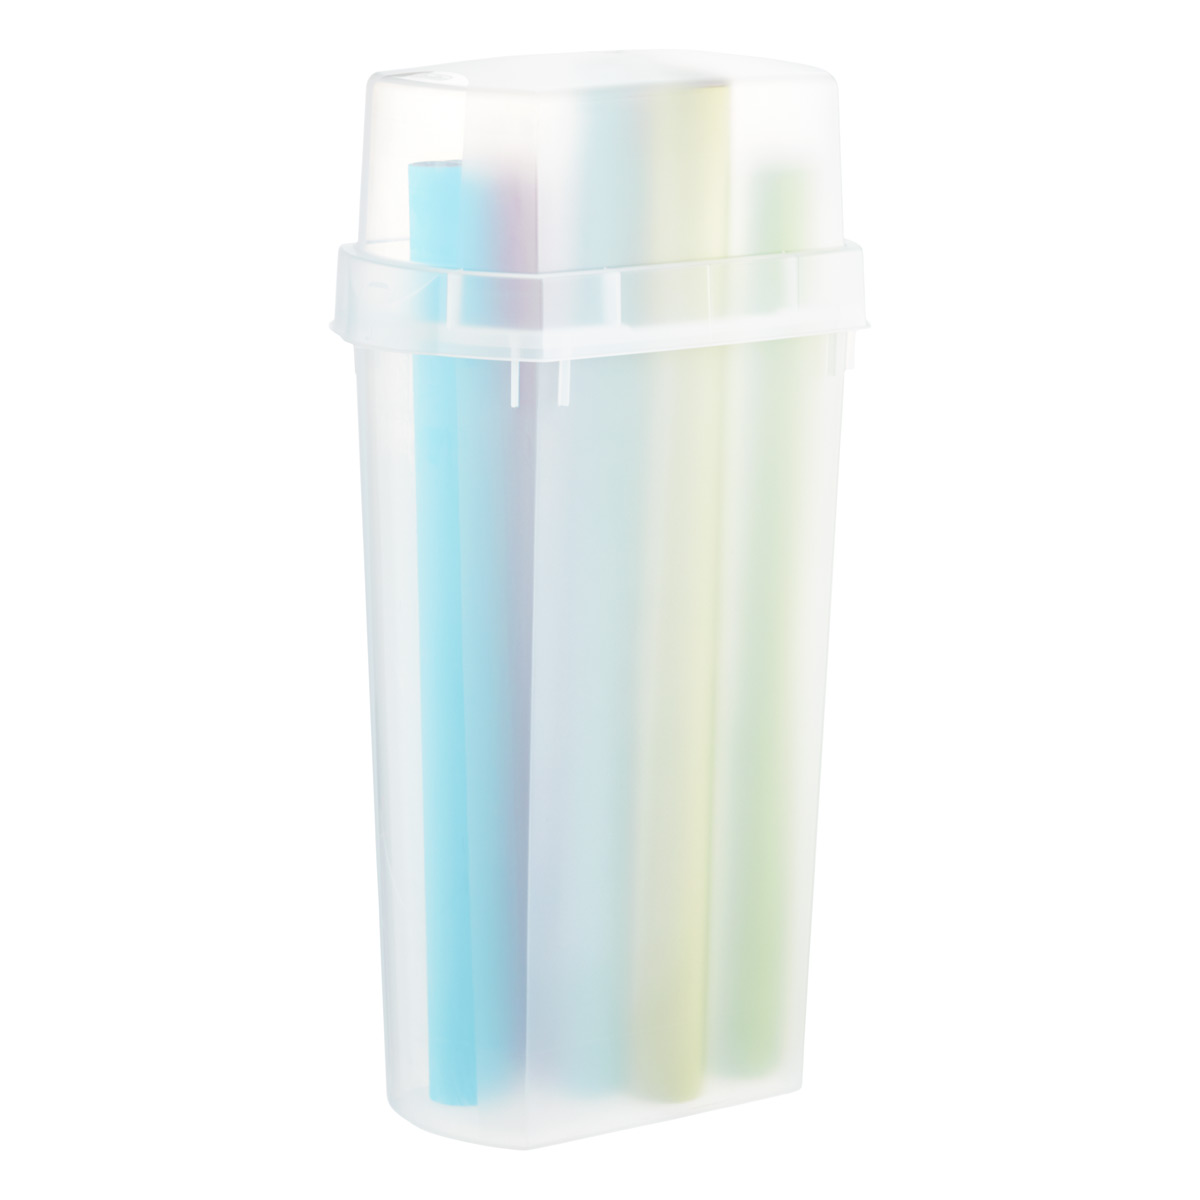 Vertical Gift Wrap Organizer Gift Wrap Storage Container The Container Store15